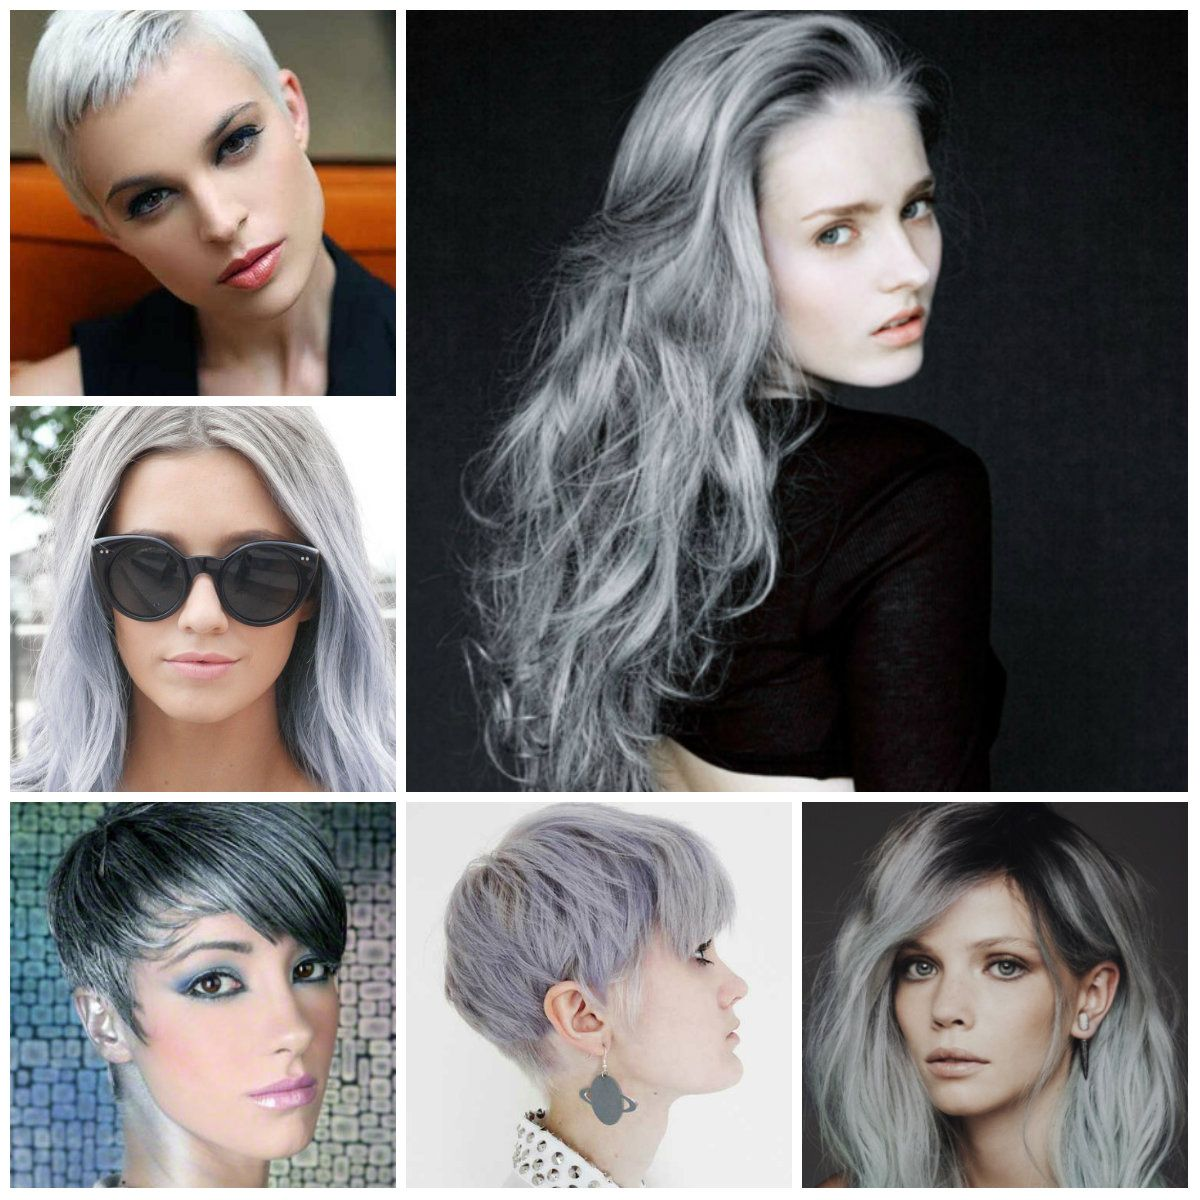 silver hair color 2016 mood board pinterest hair hair styles and hair cuts. Black Bedroom Furniture Sets. Home Design Ideas